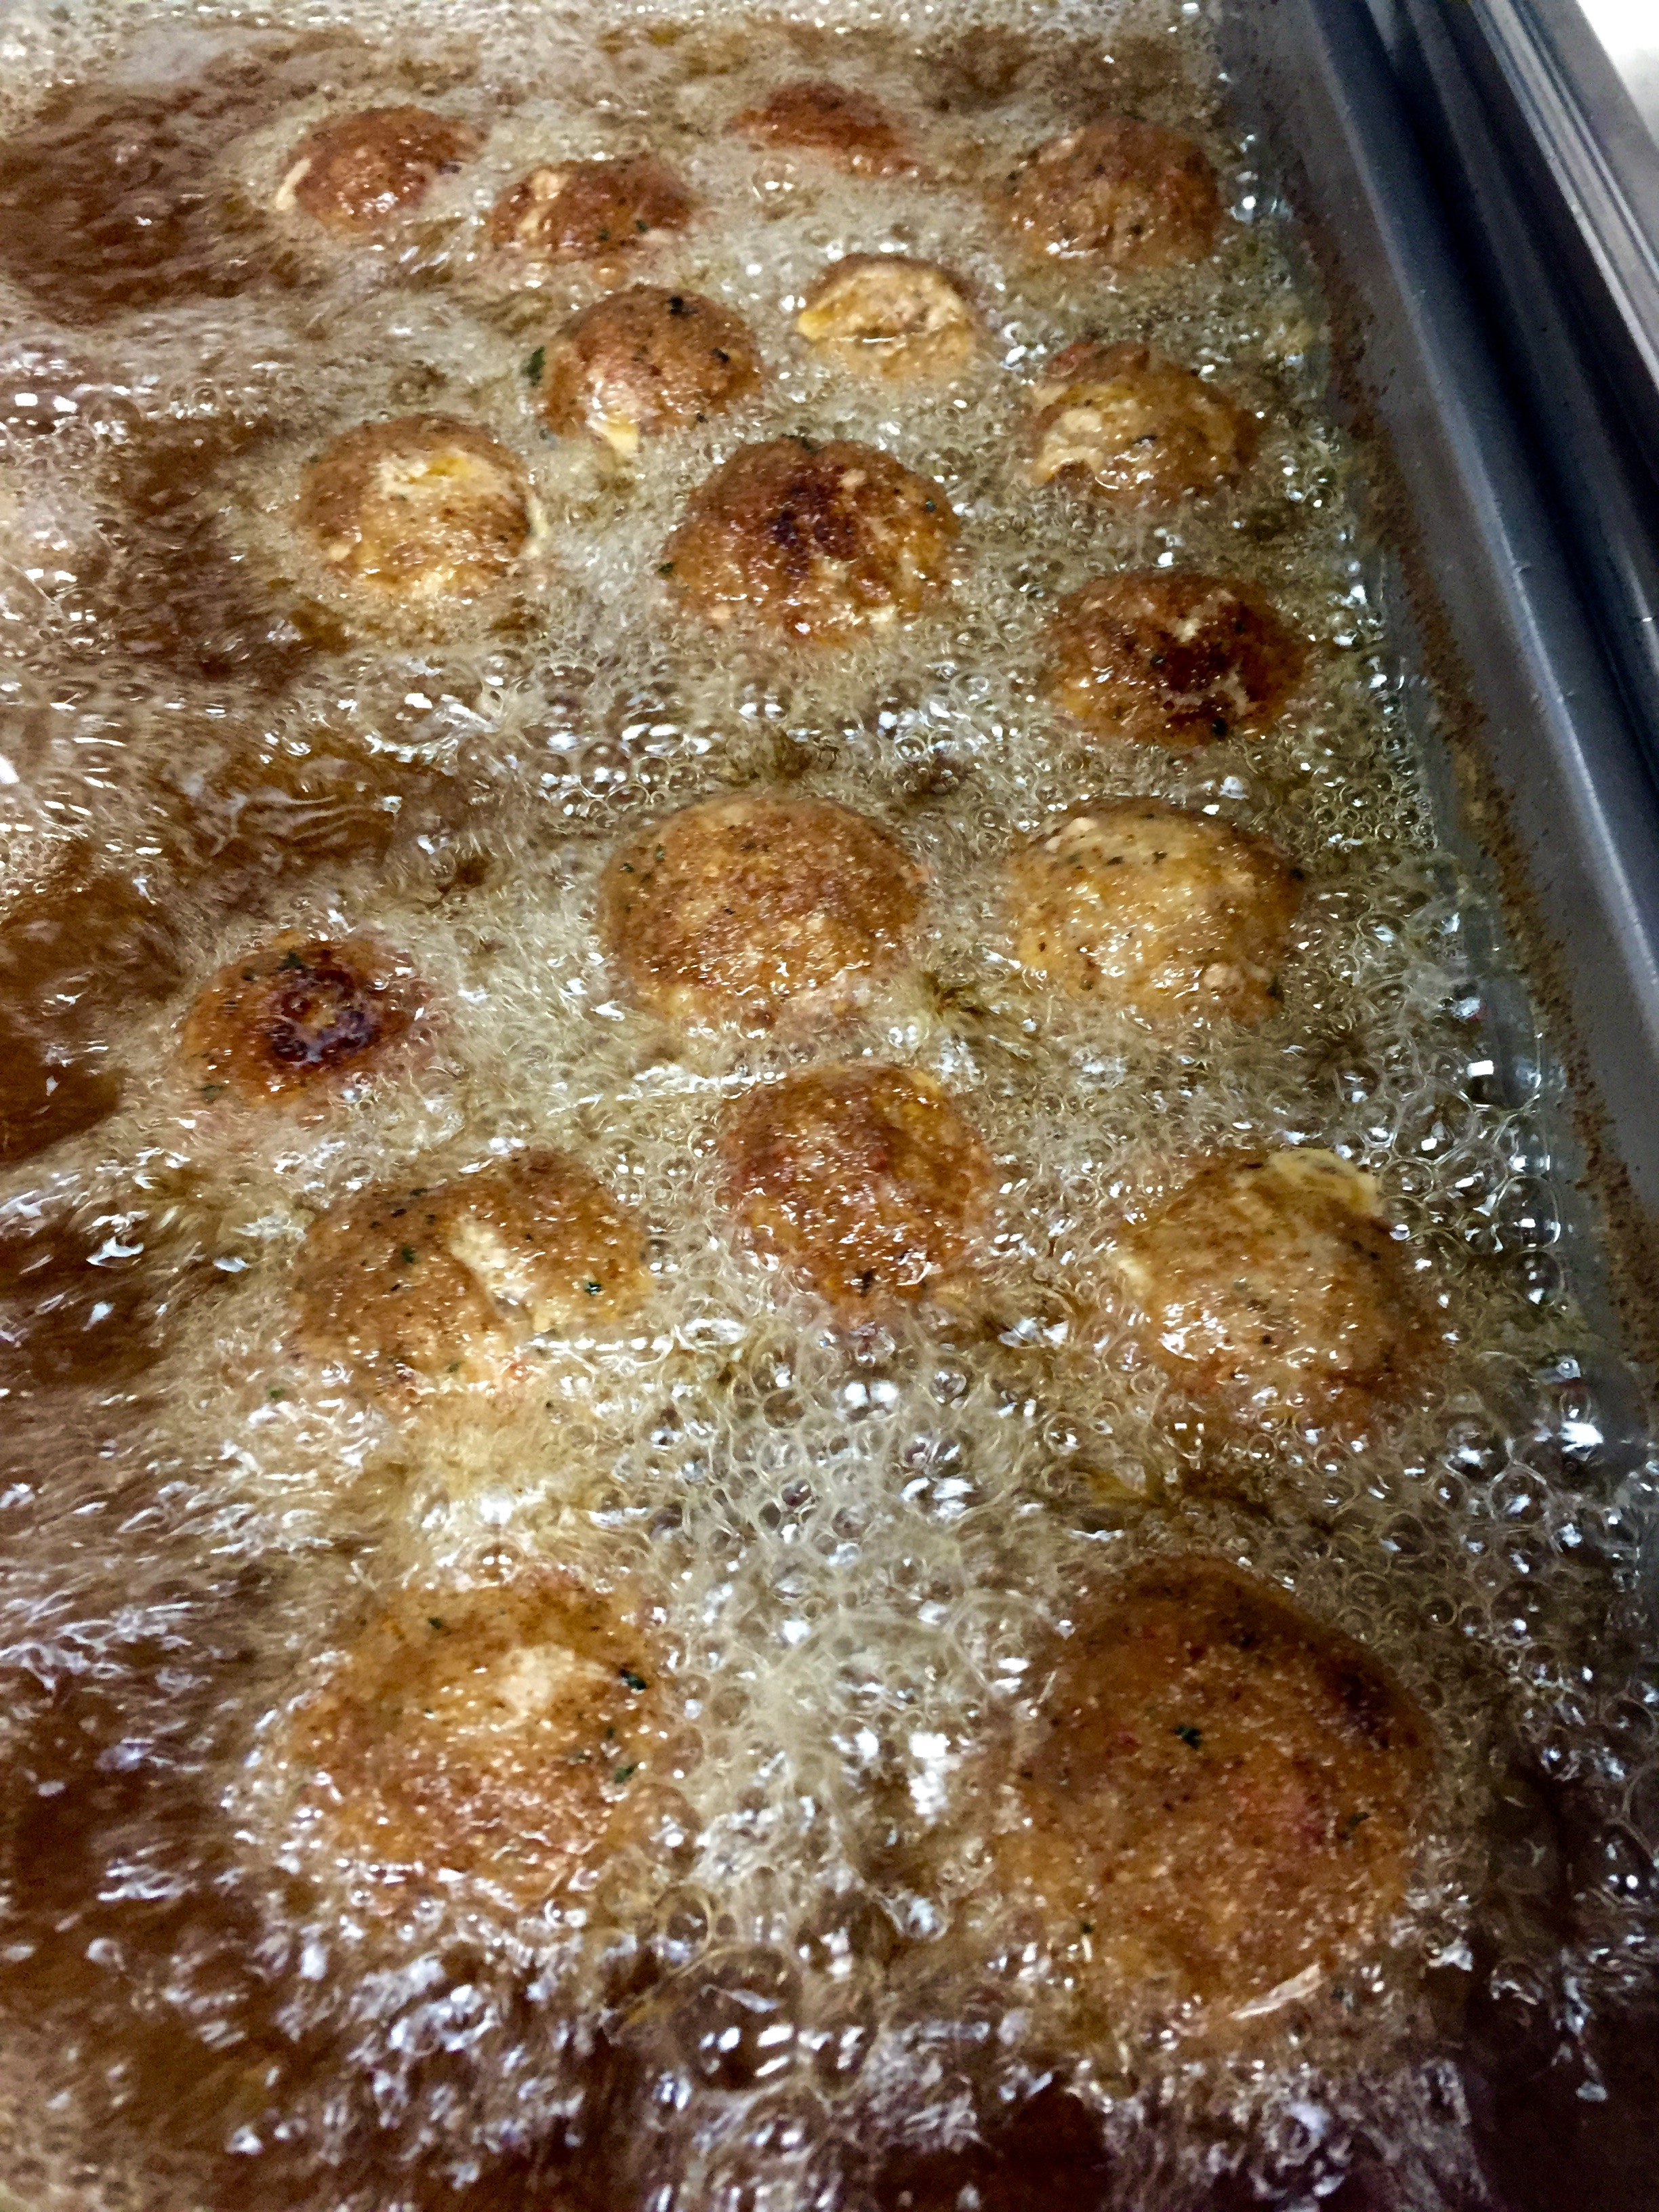 Meatballs into the fryer